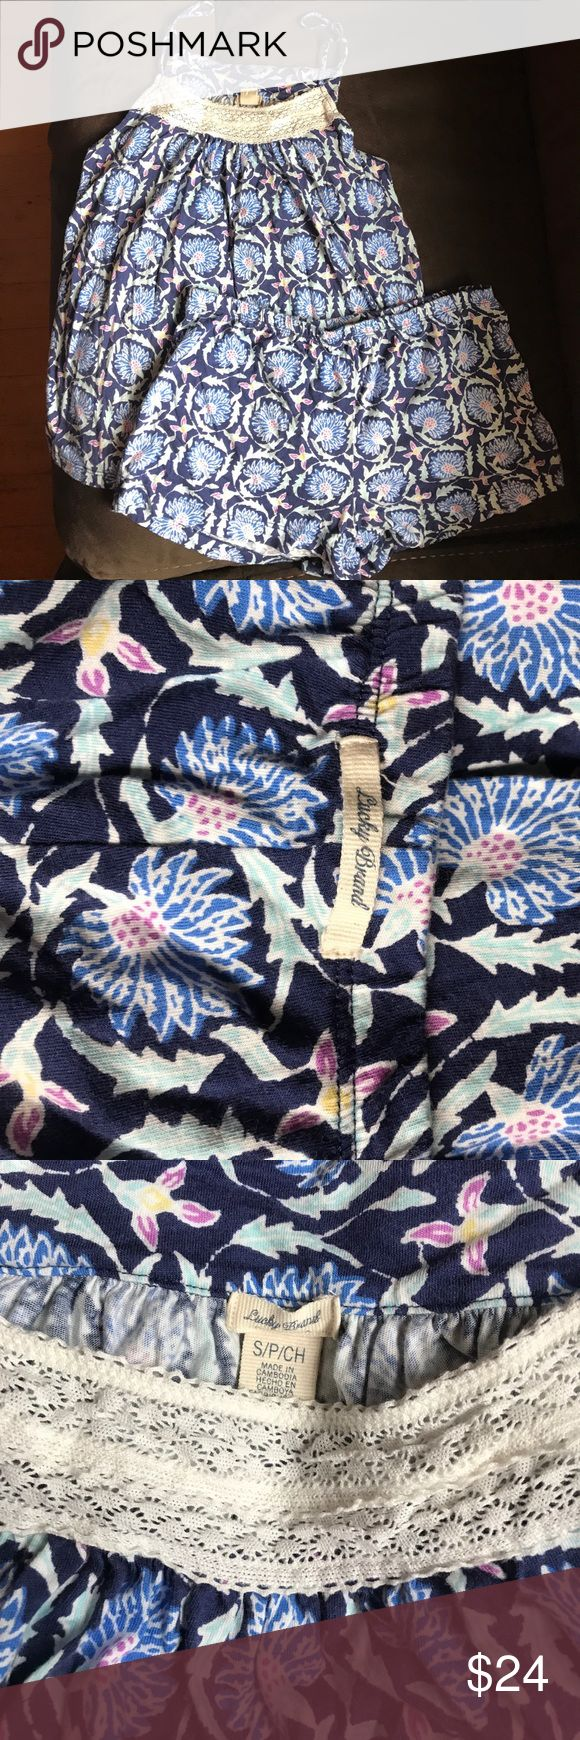 Lucky Brand Pajama Short Set Print is like an exotic floral in shades of blue. Pink, and cream. Lace detail on front neckline. Only worn a couple of times. Lucky Brand Intimates & Sleepwear Pajamas